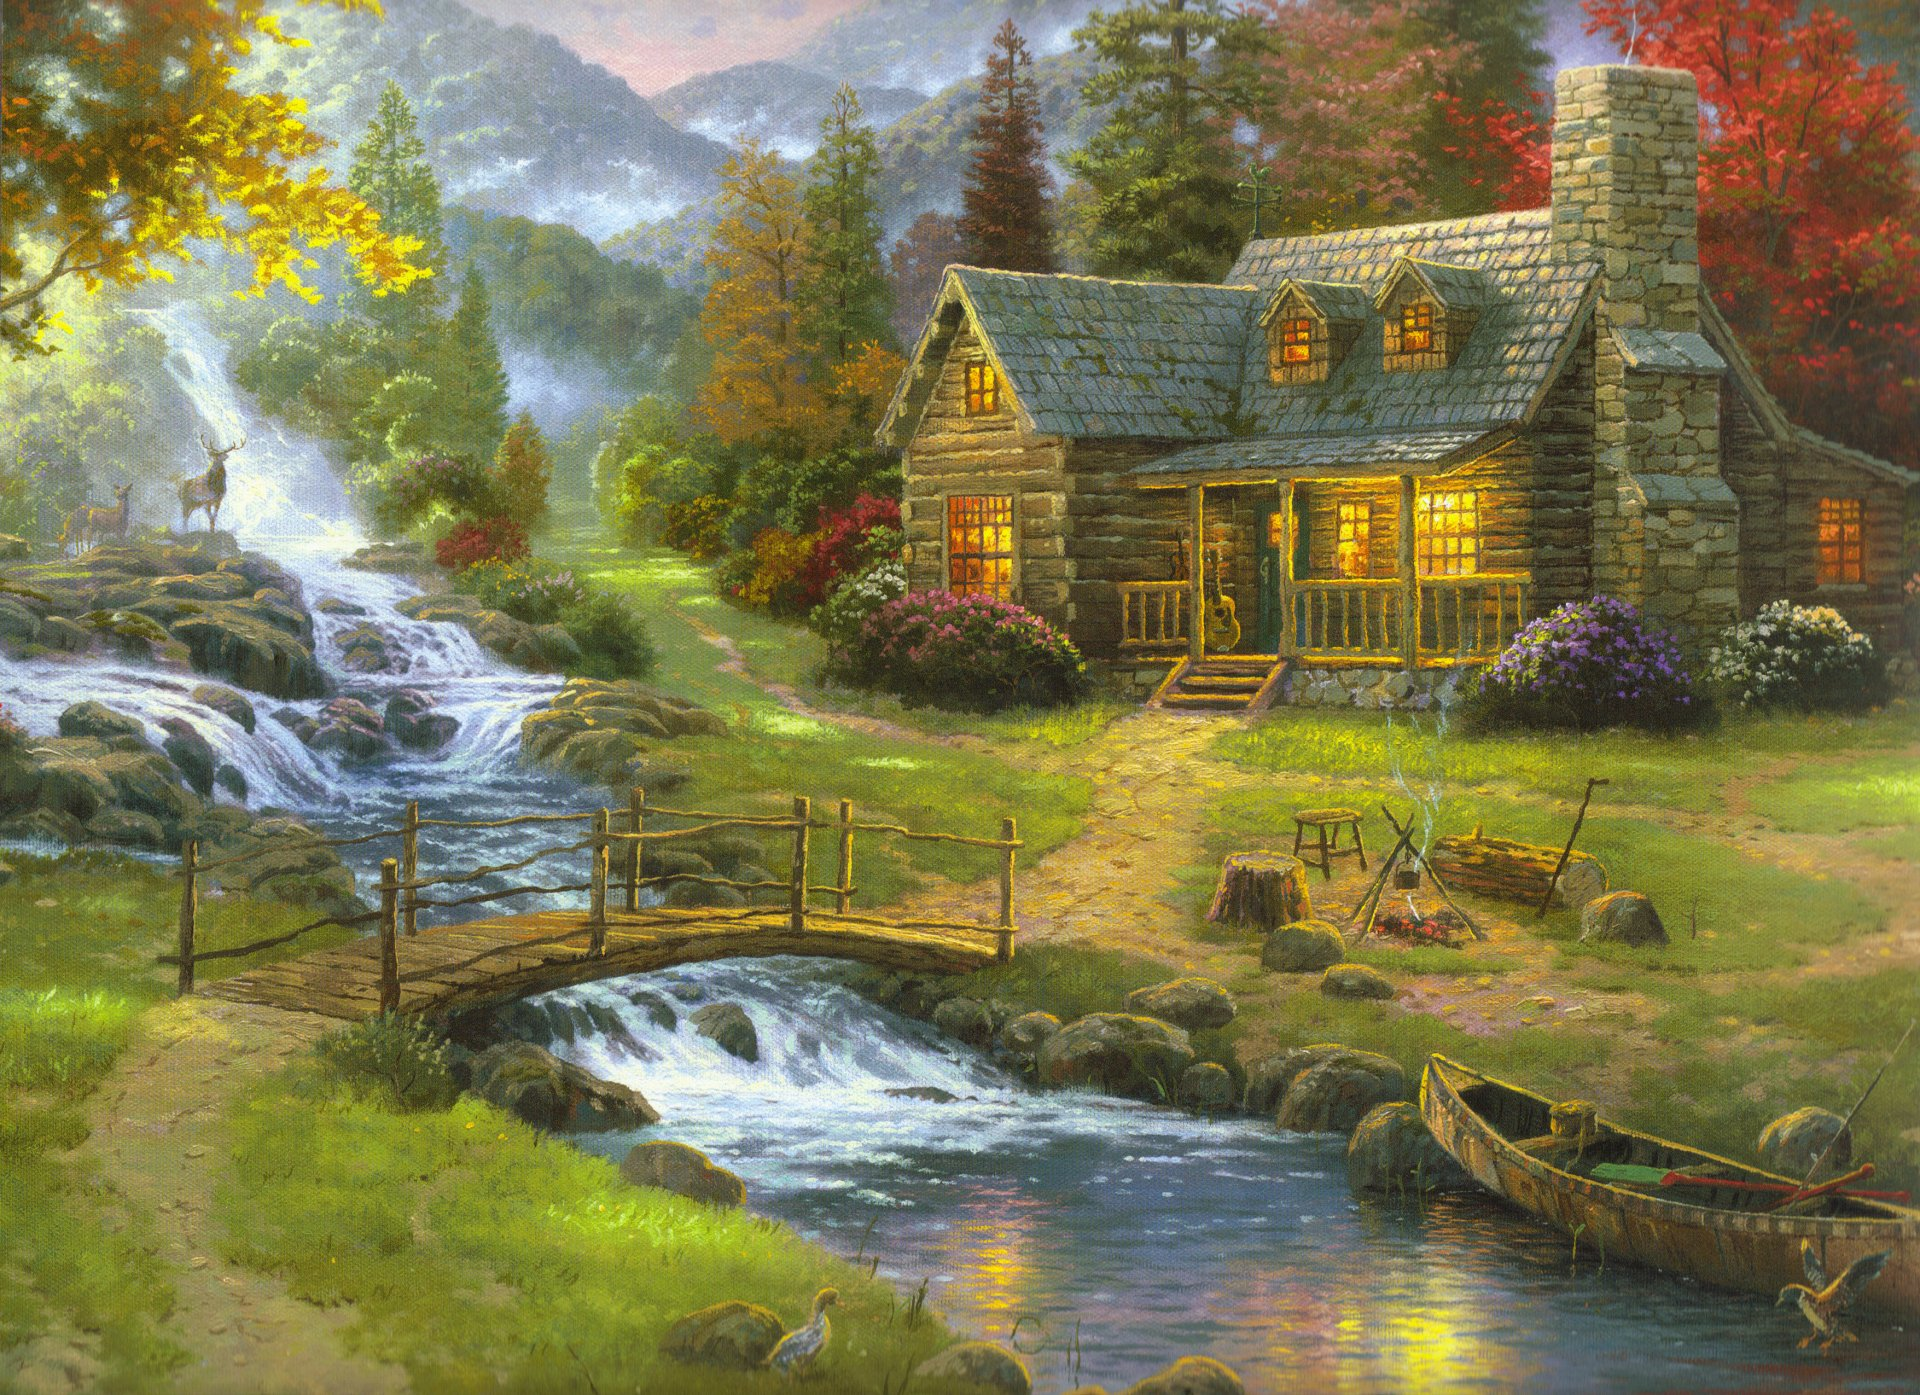 mountain paradise thomas kinkade nature painting forest house guitars mountain river wooden bridge boat fog reindeer pattern picture pictures art